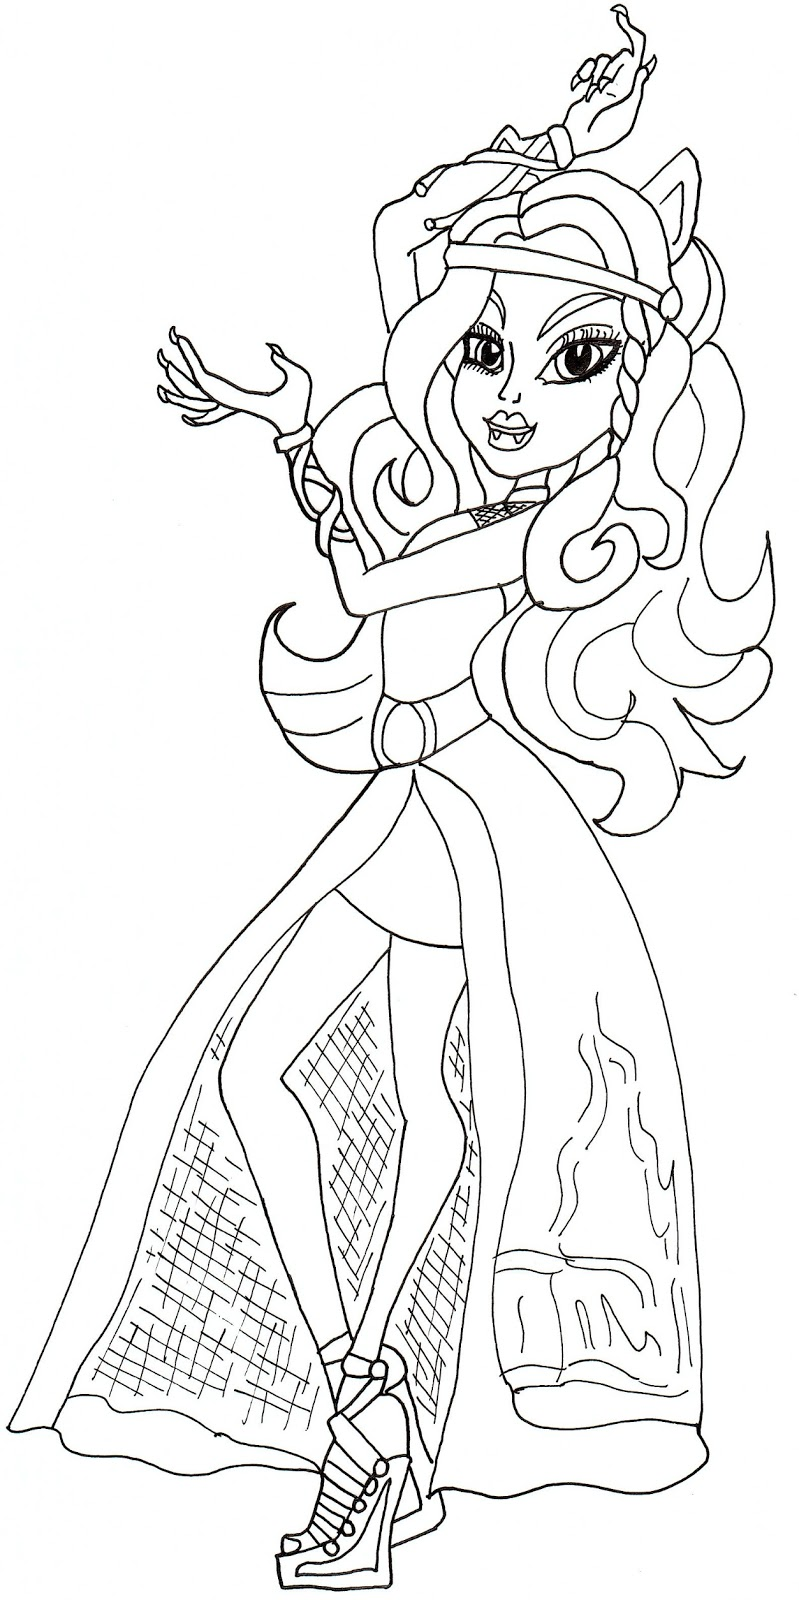 Free printable monster high coloring pages june 2013 for Print monster high coloring pages